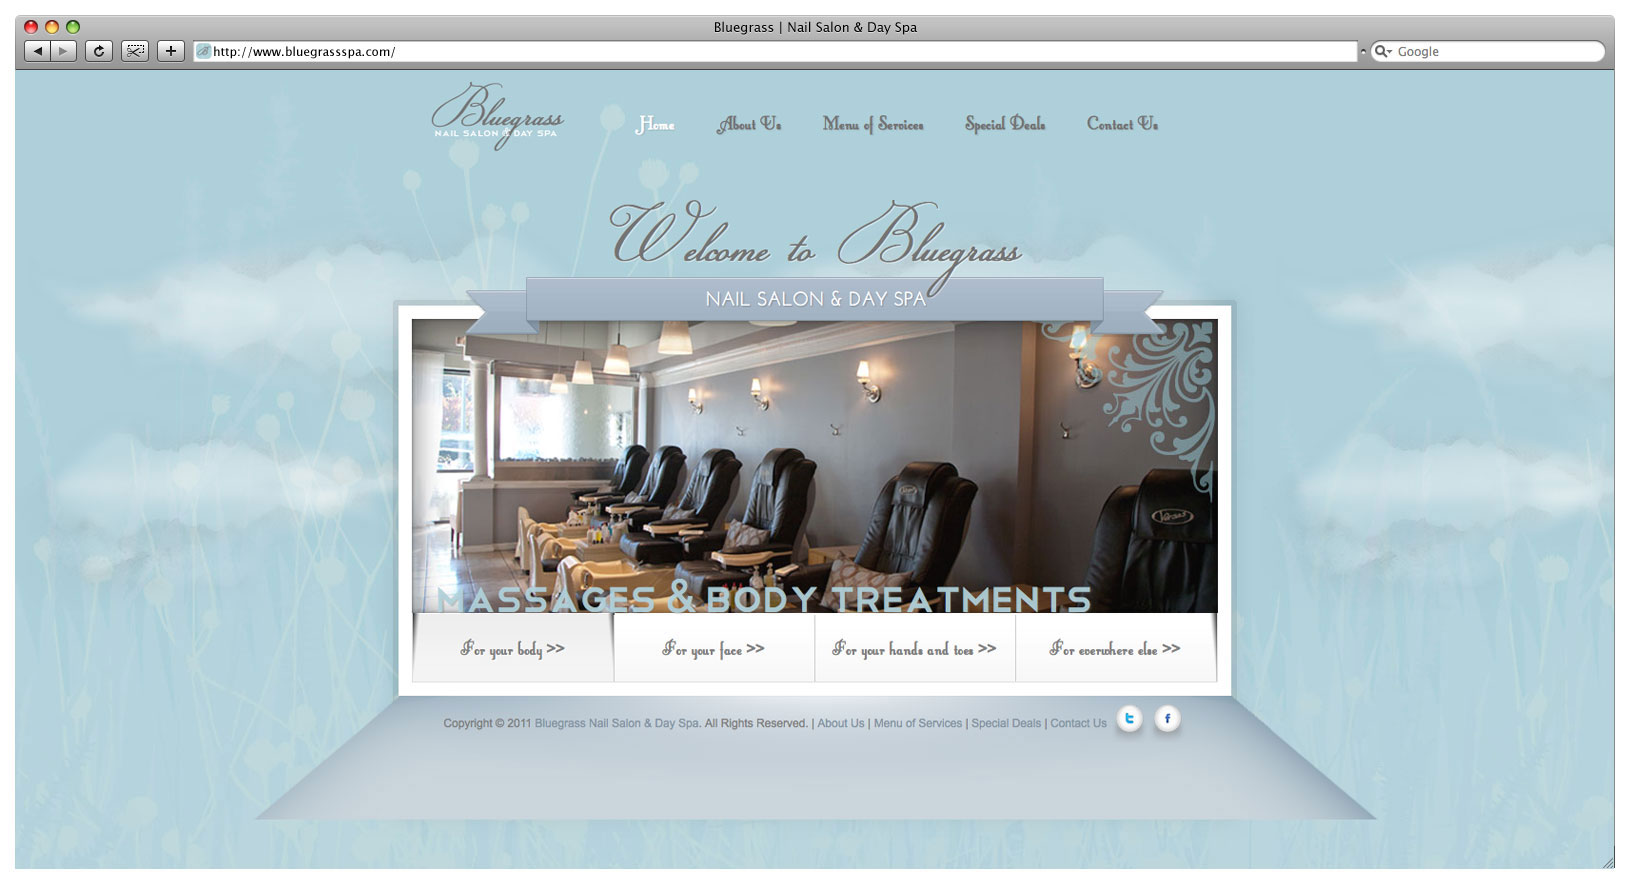 Bluegrass Day Spa & Nail Salon Website - Landing Page